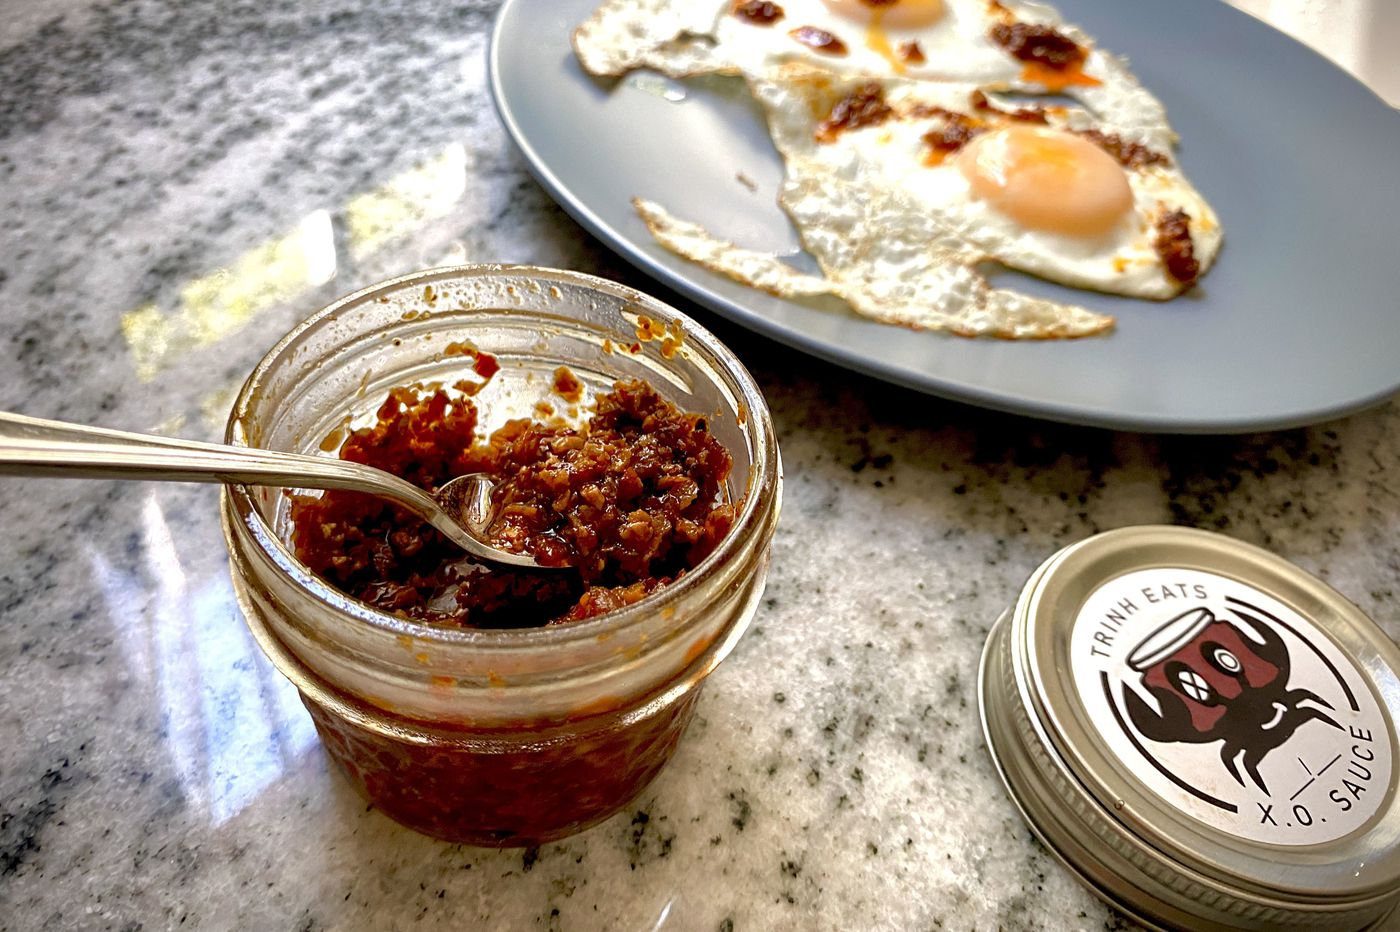 Meet the Delco native selling homemade XO sauce out of an auto tag shop